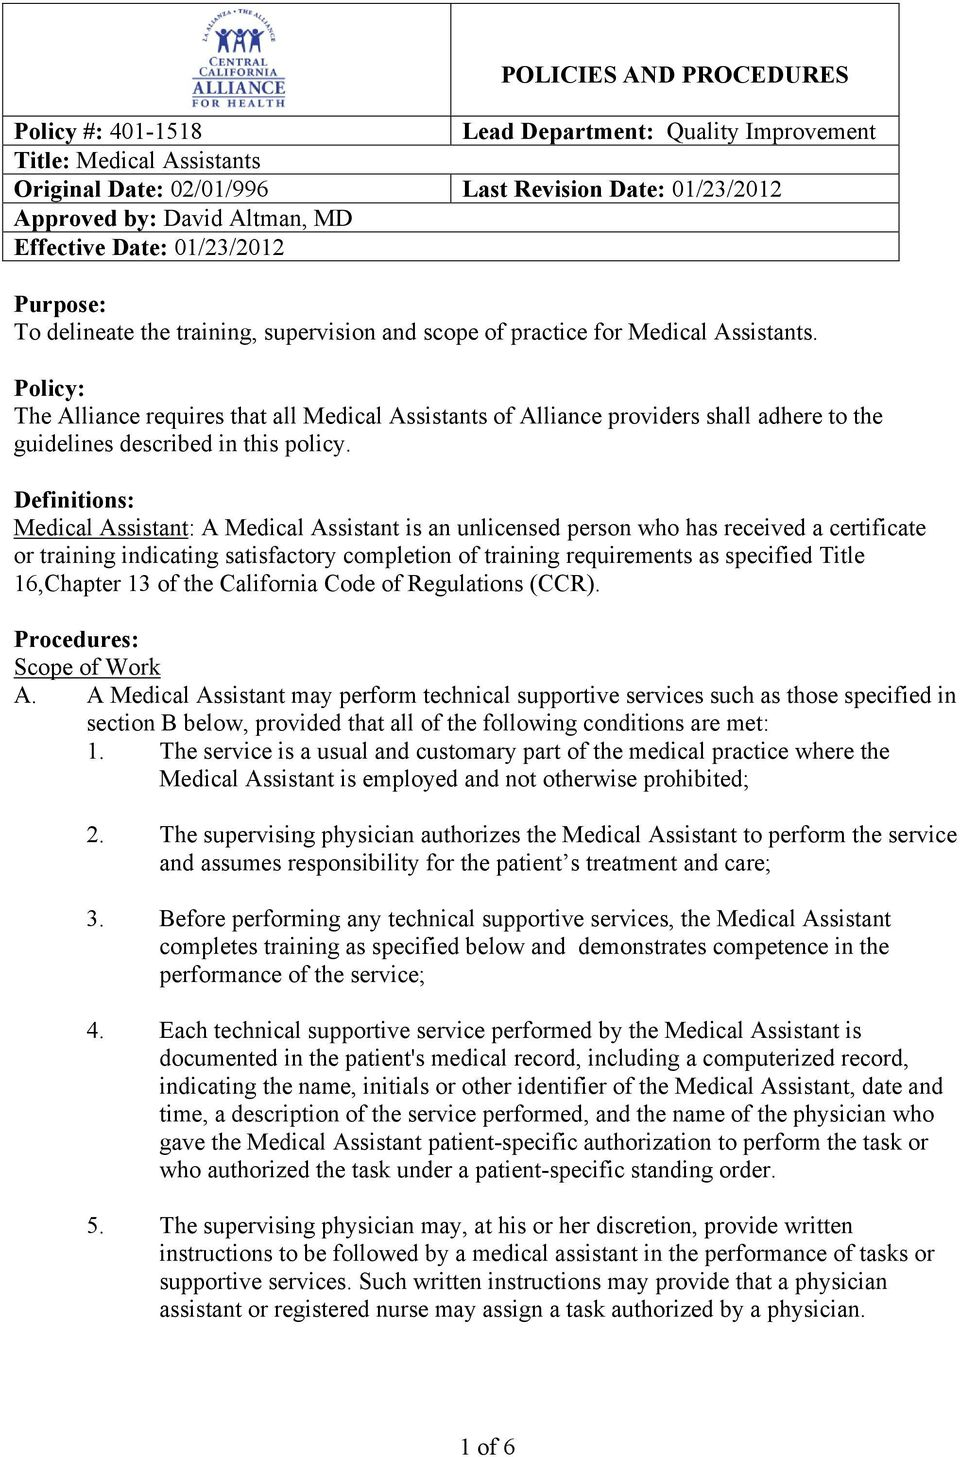 Definitions: Medical Assistant: A Medical Assistant is an unlicensed person who has received a certificate or training indicating satisfactory completion of training requirements as specified Title